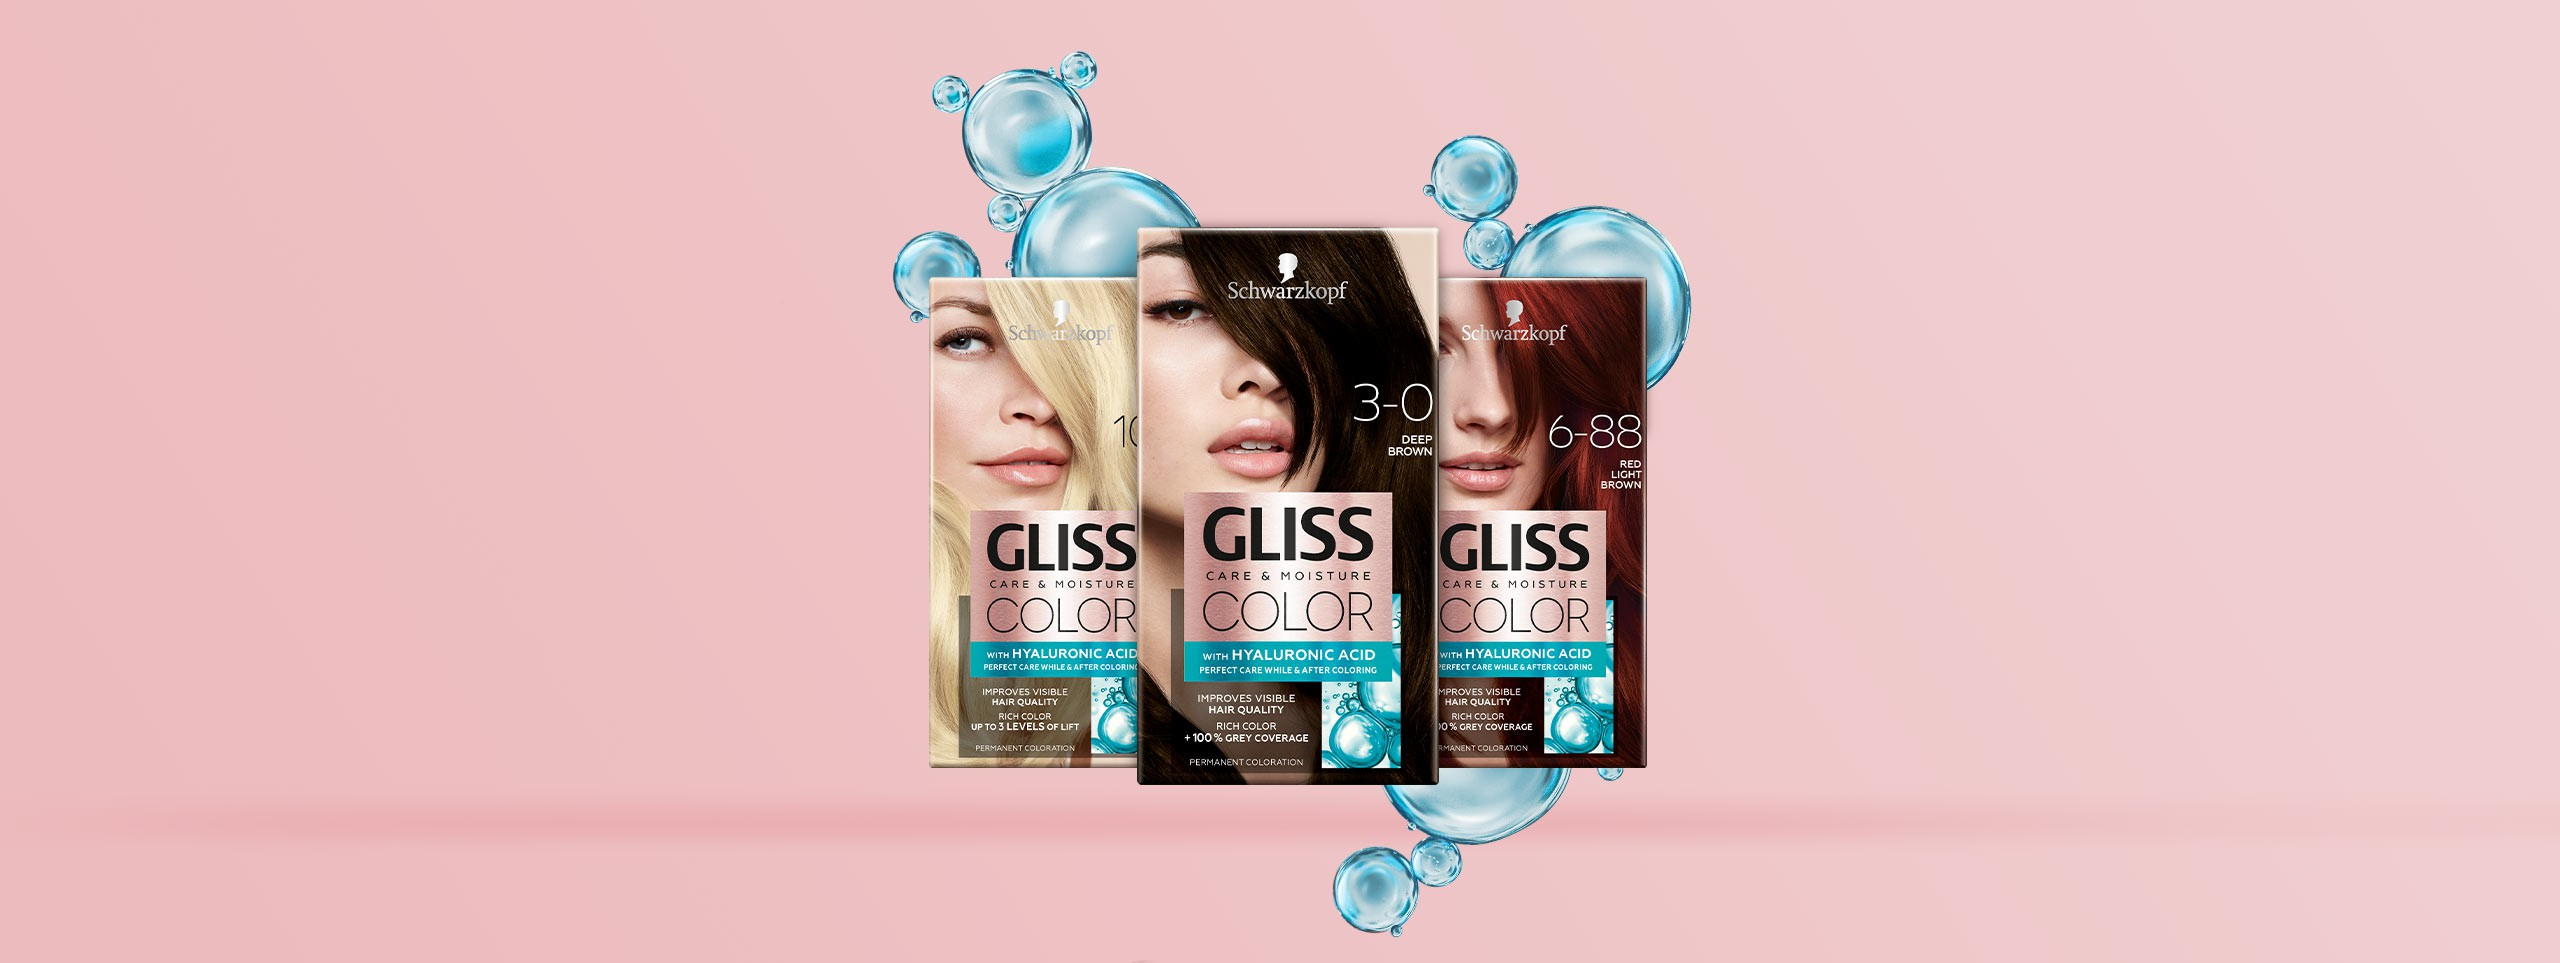 gliss_com_hair_color_2560x963